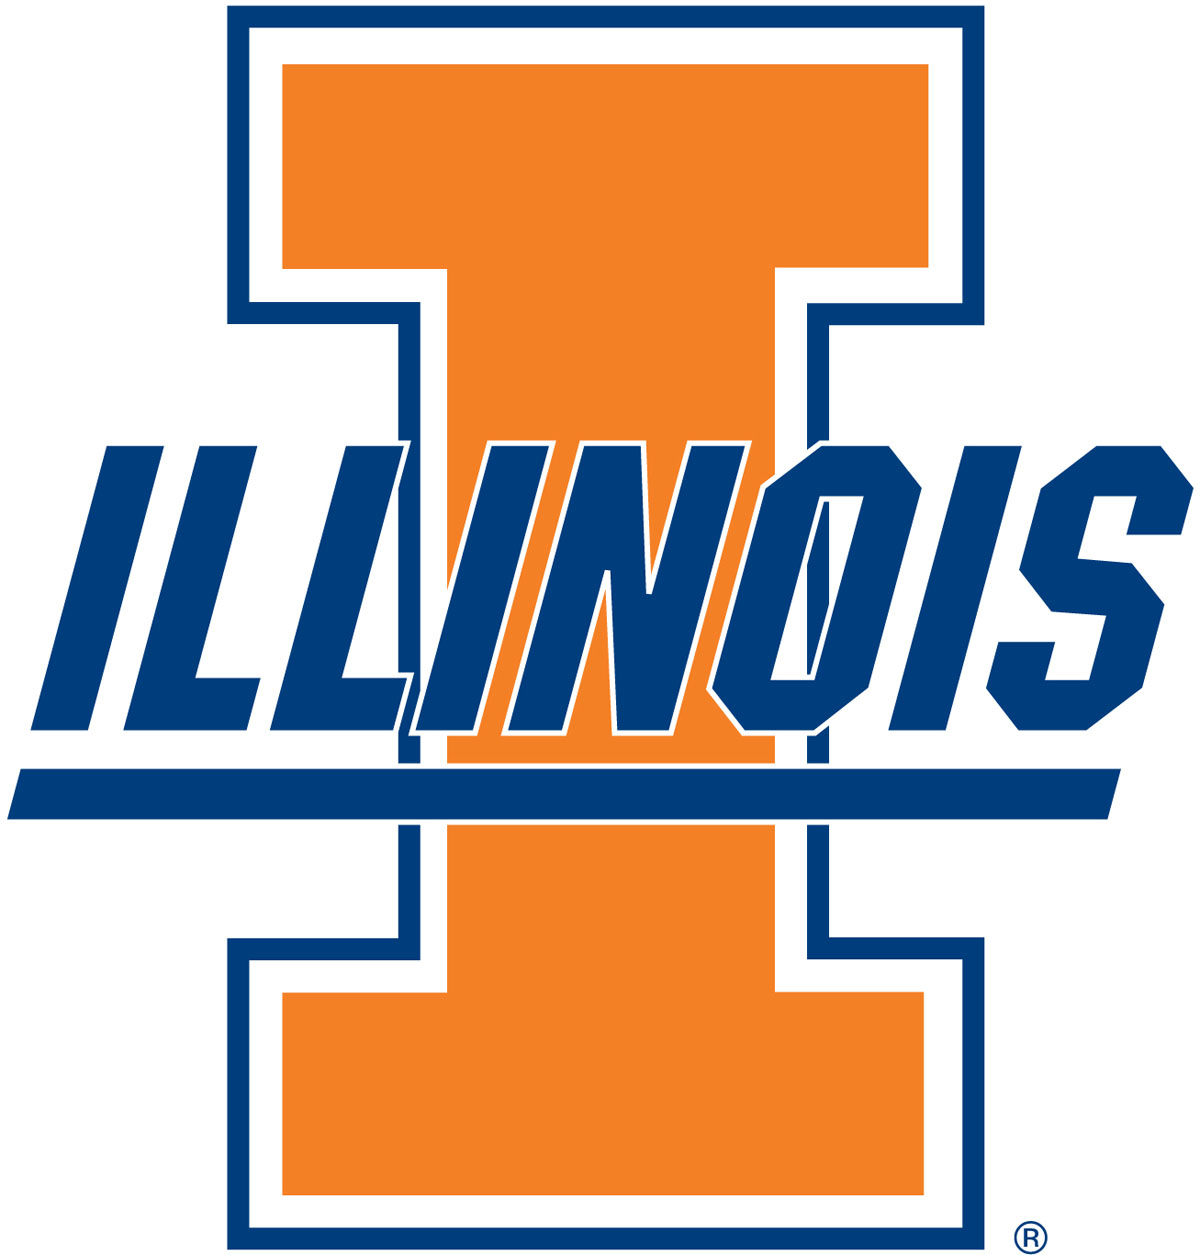 47] University of Illinois Wallpaper on WallpaperSafari 1200x1255